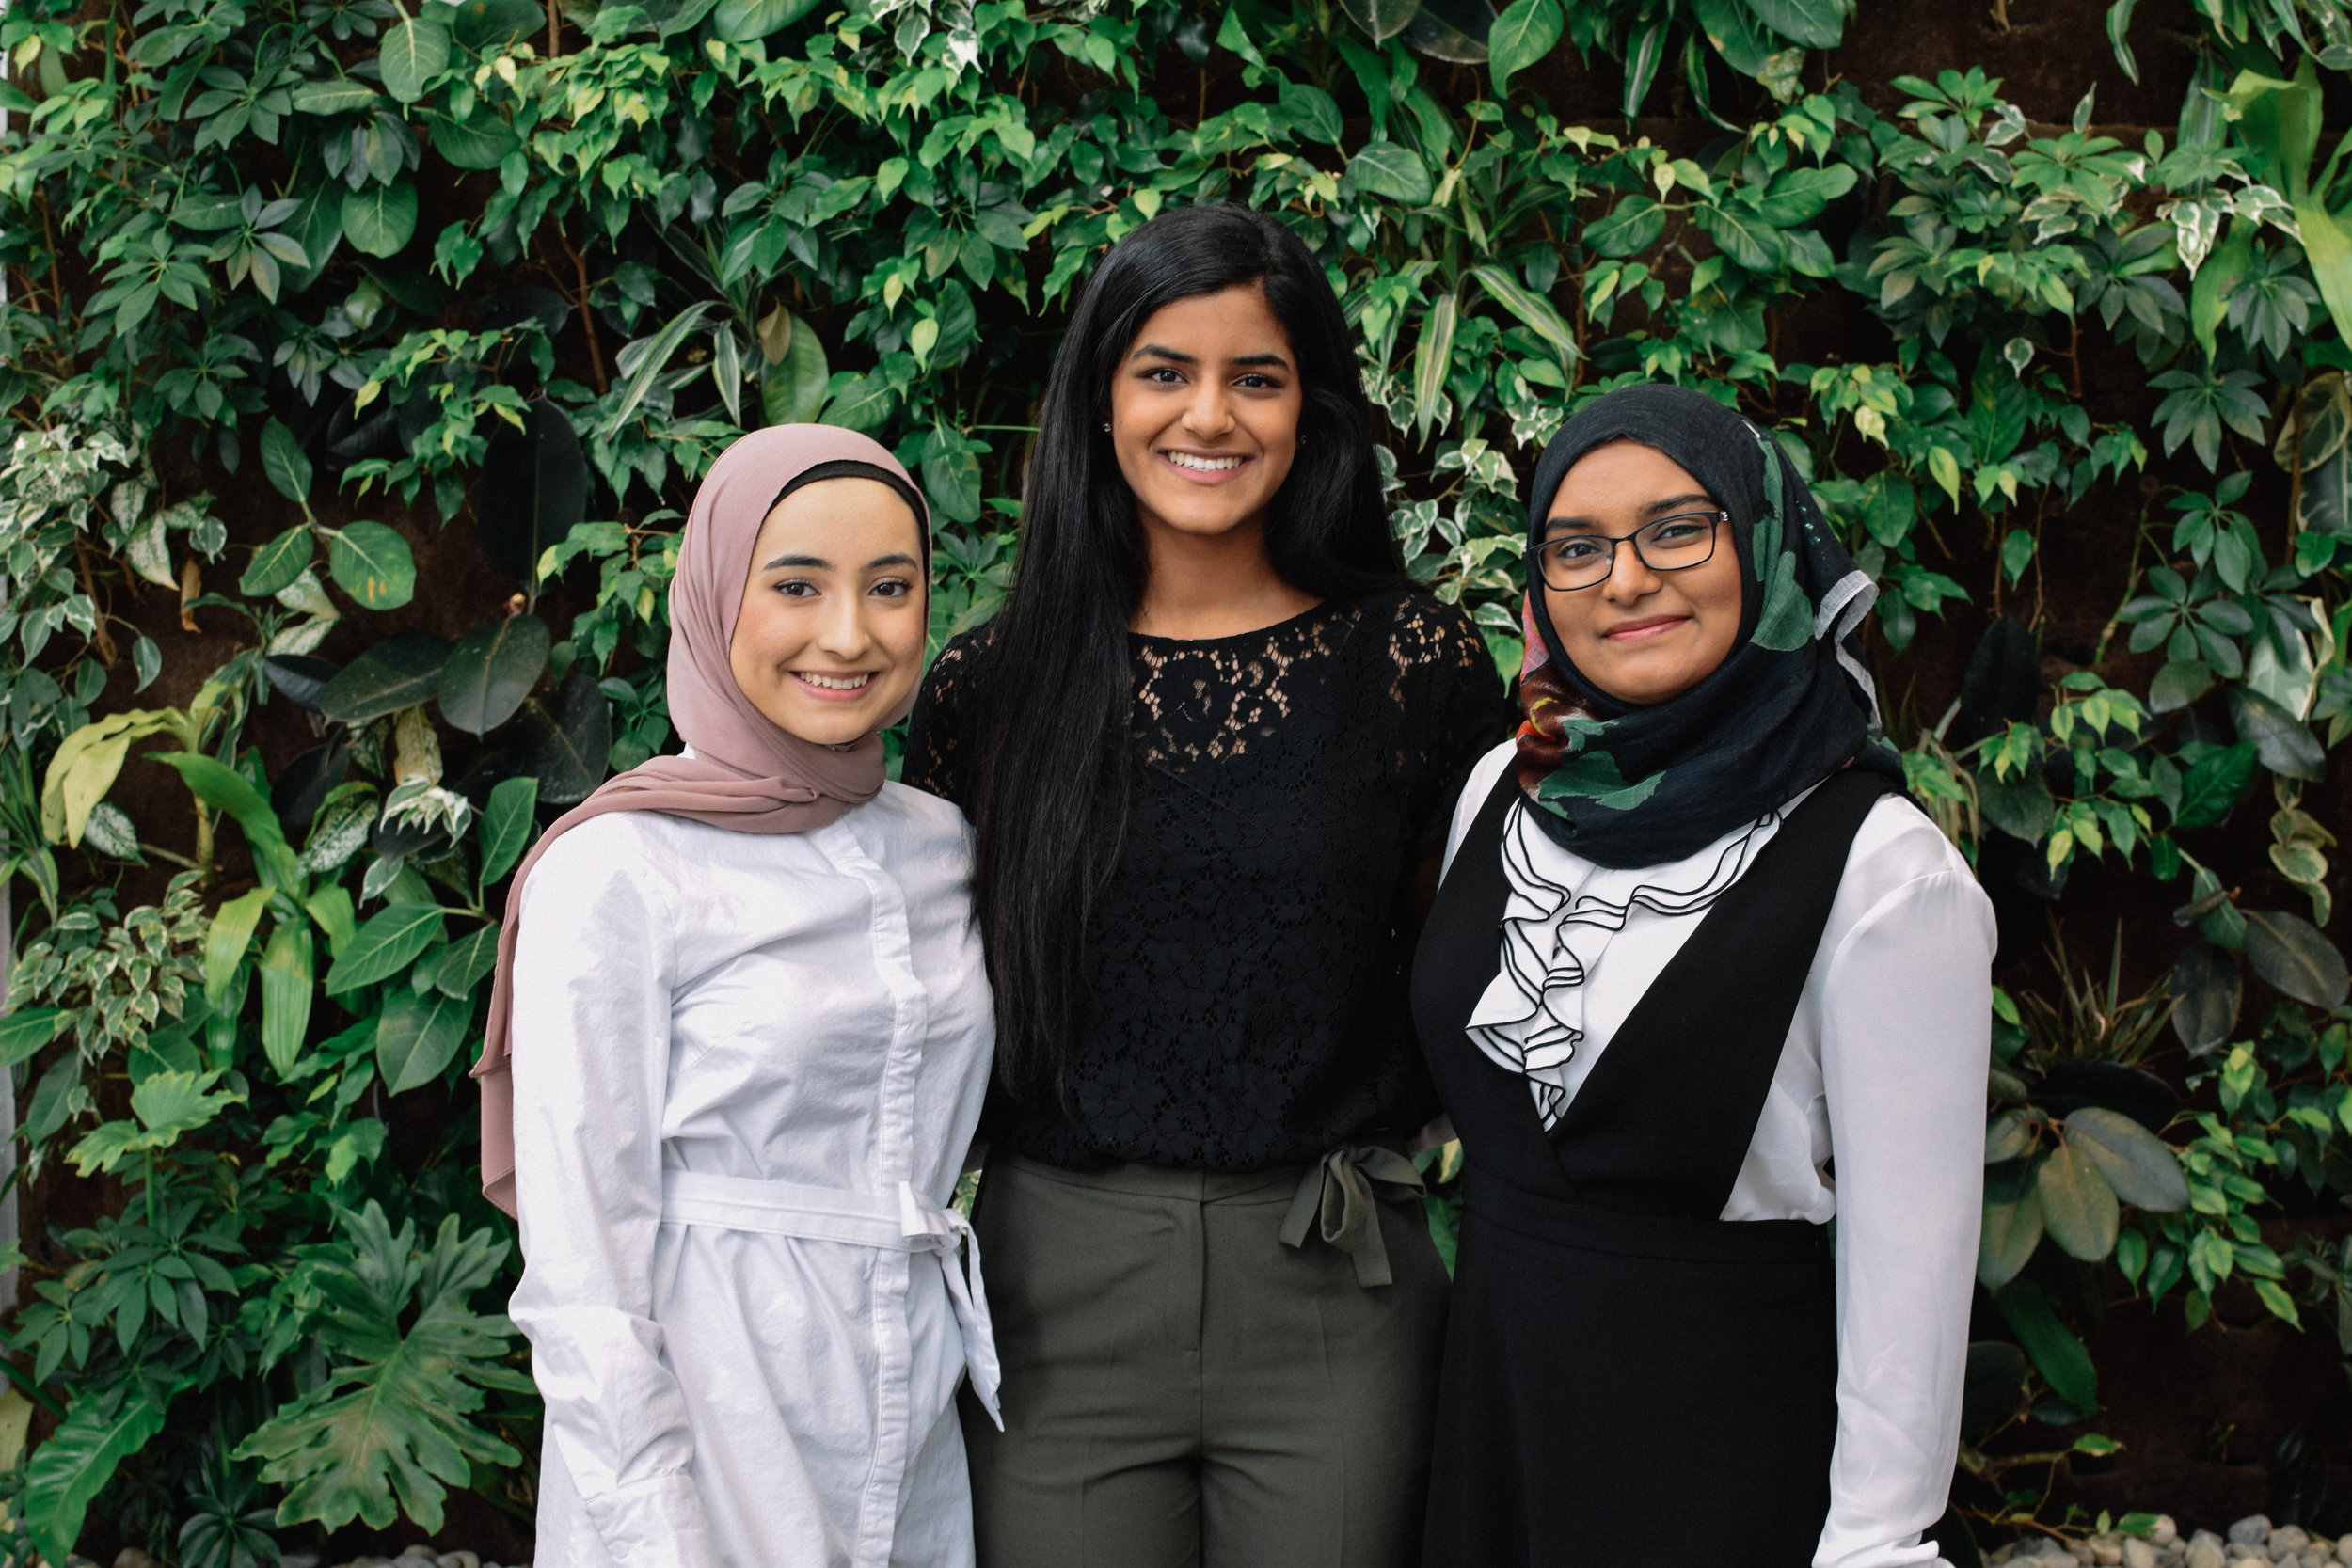 Project Healthy Schools Global - Working with teachers and children in Bangladesh to provide education in nutrition, fitness, and other health topicsJOEITA MACFIELD, AFRA JAMAL, FAATIMAH RAISA